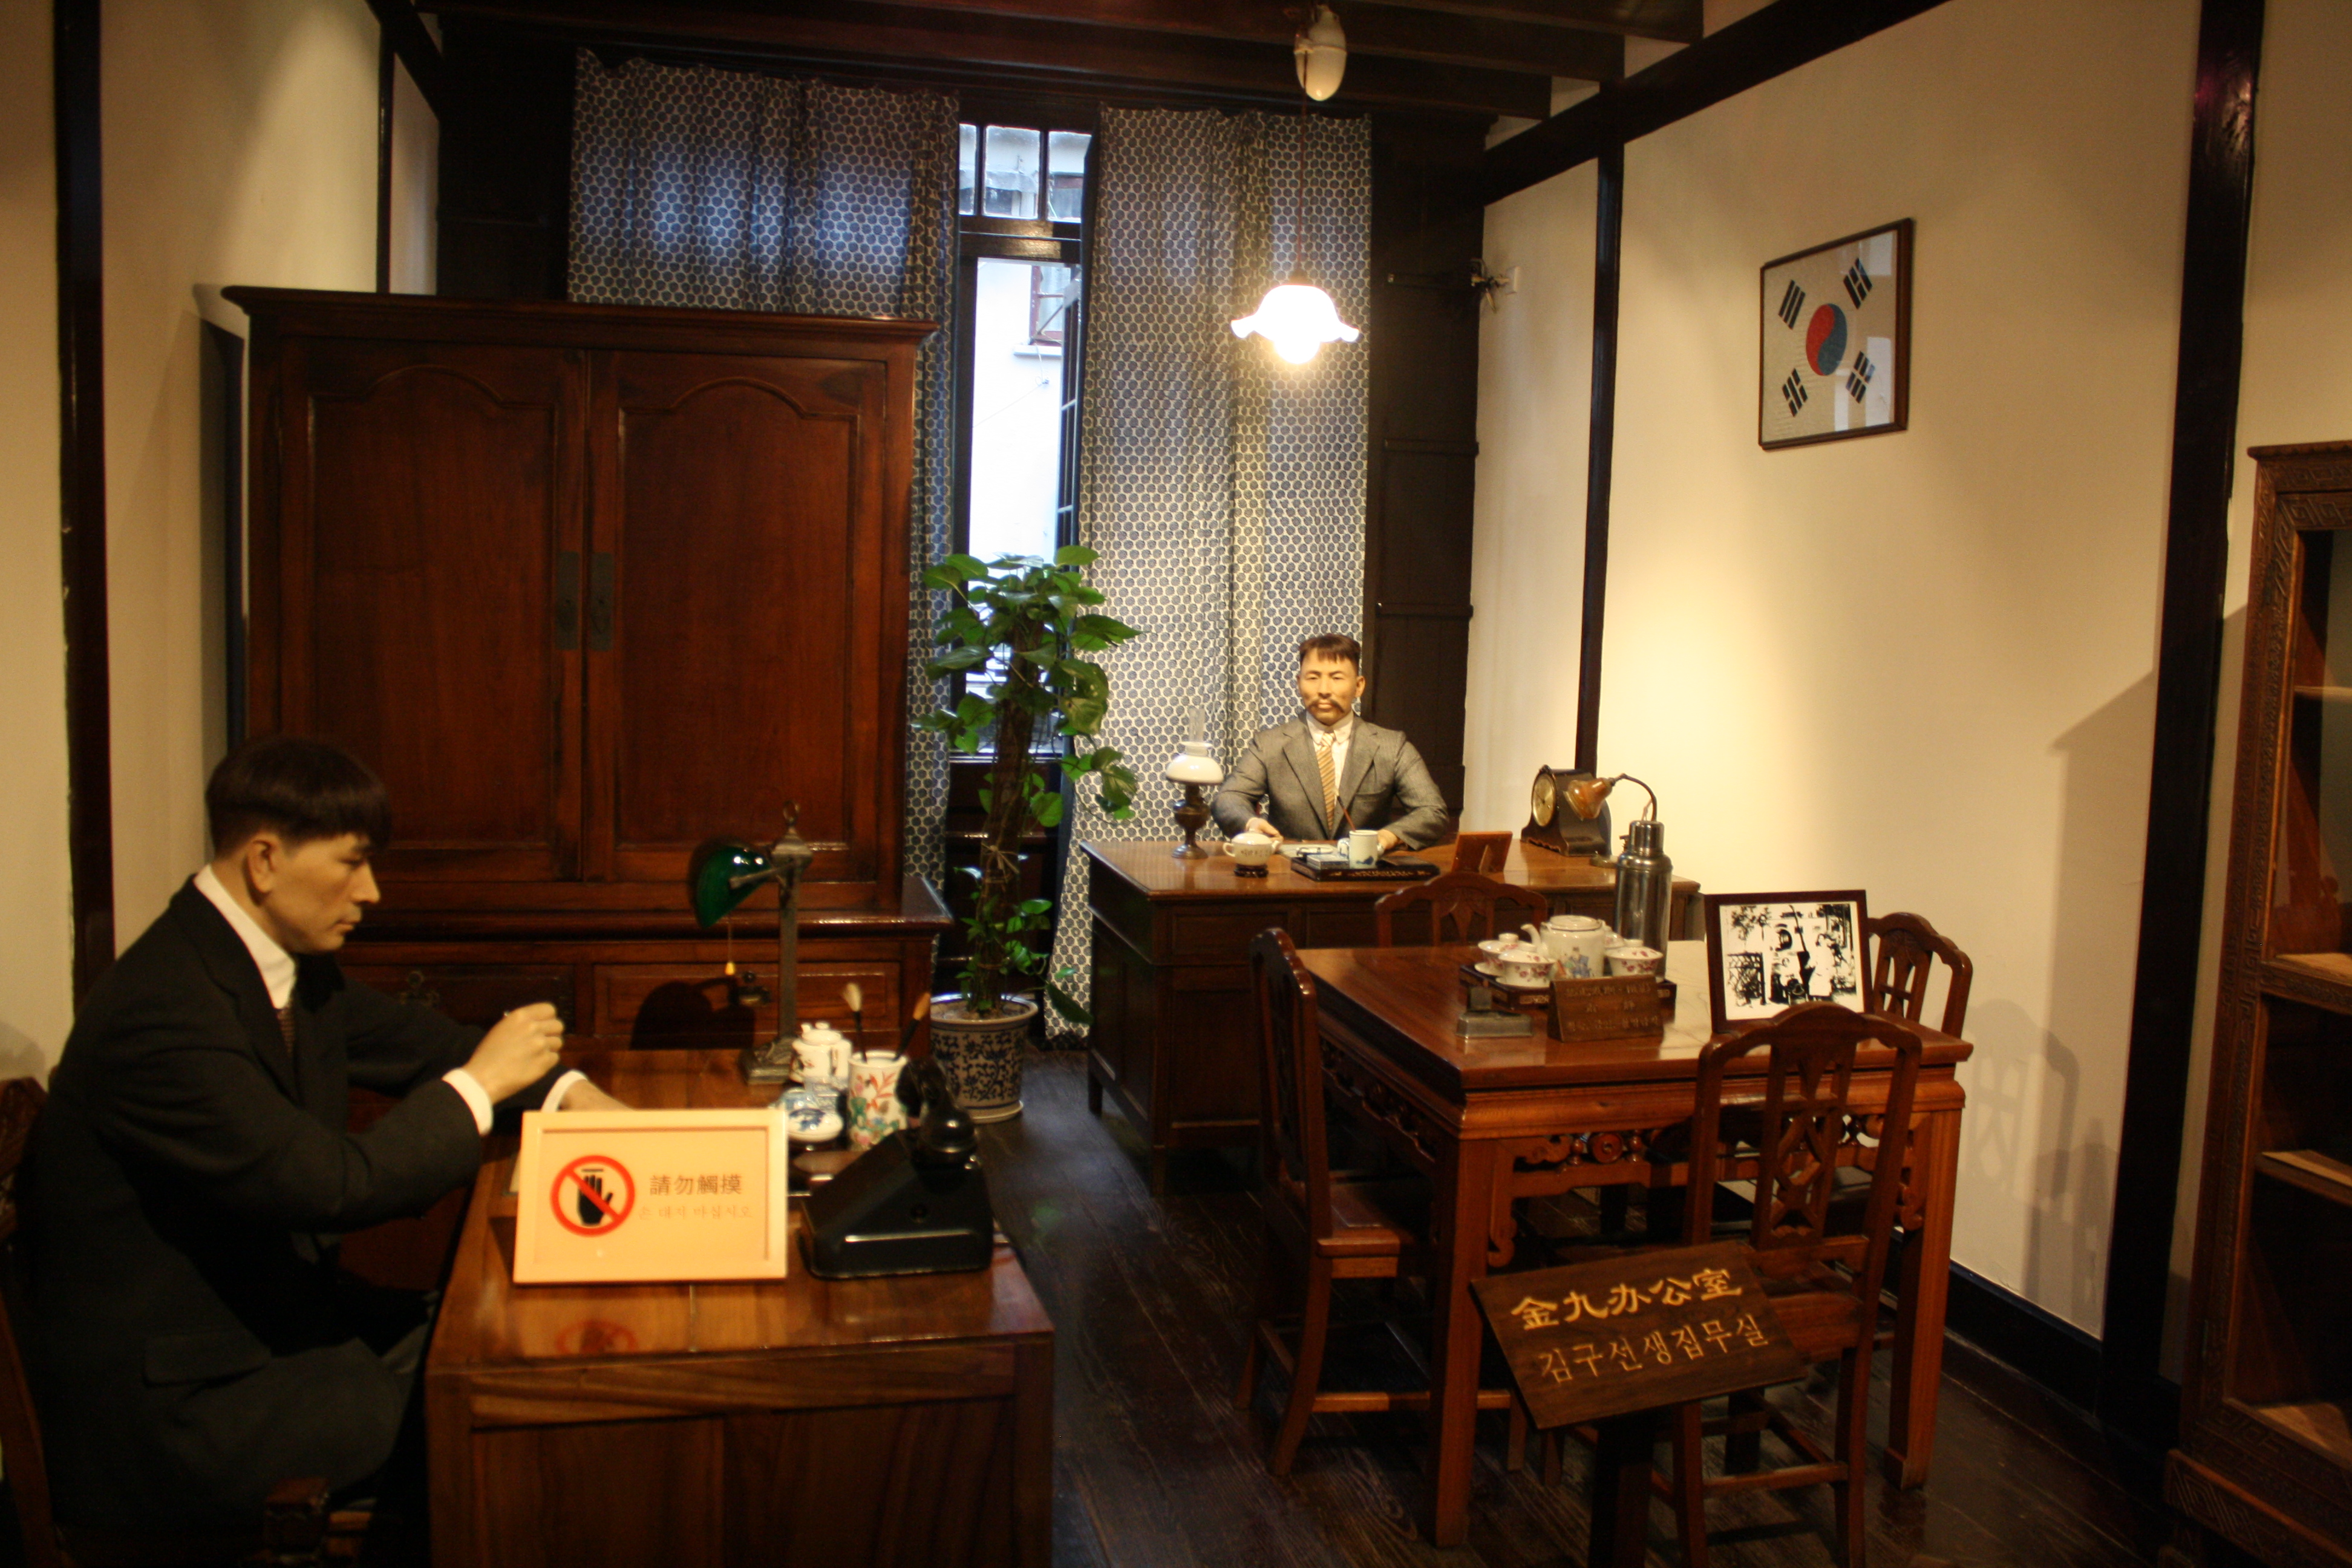 Office_of_Kim_Gu_in_Provisional_Government_of_ROK,_Shanghai